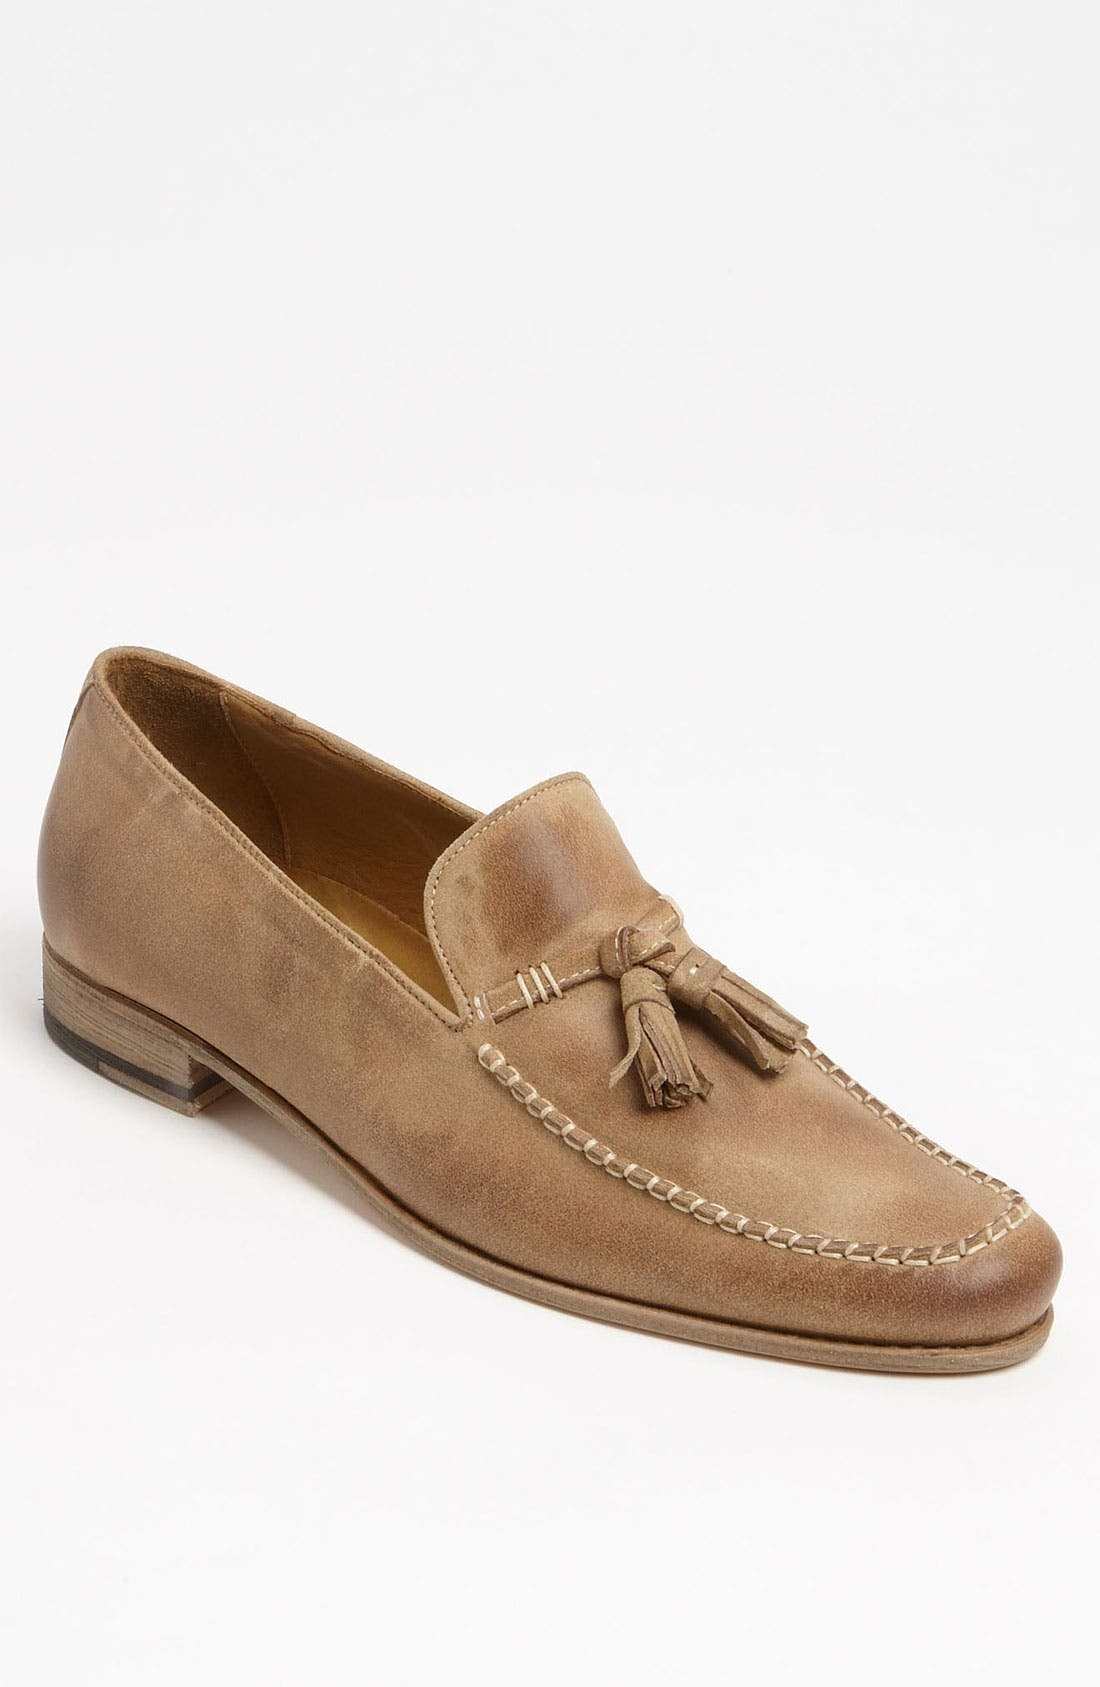 Alternate Image 1 Selected - Billy Reid Tassel Loafer